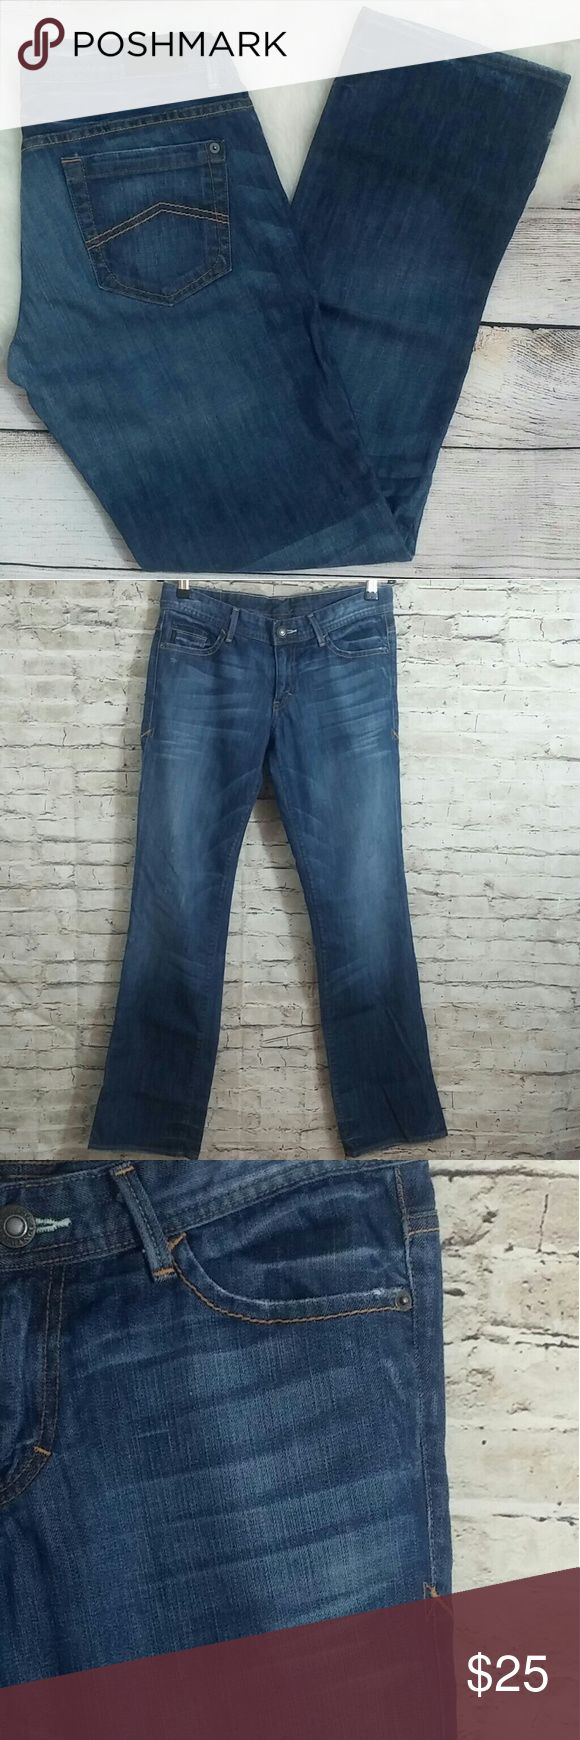 """Armani Exchange Potassium Whisker Distressed Jeans Armani Exchange ~ Potassium Whisker Distressed Denim Jeans. Size 8, In Good Pre-Owned Condition With Wear On Hems.   Waist 15"""" Rise 8"""" Inseam 32"""" Straight Leg Cotton Blend  Factory Distressed   No Trades, Offers Welcome! Thanks For Looking! Armani Exchange Jeans Straight Leg"""